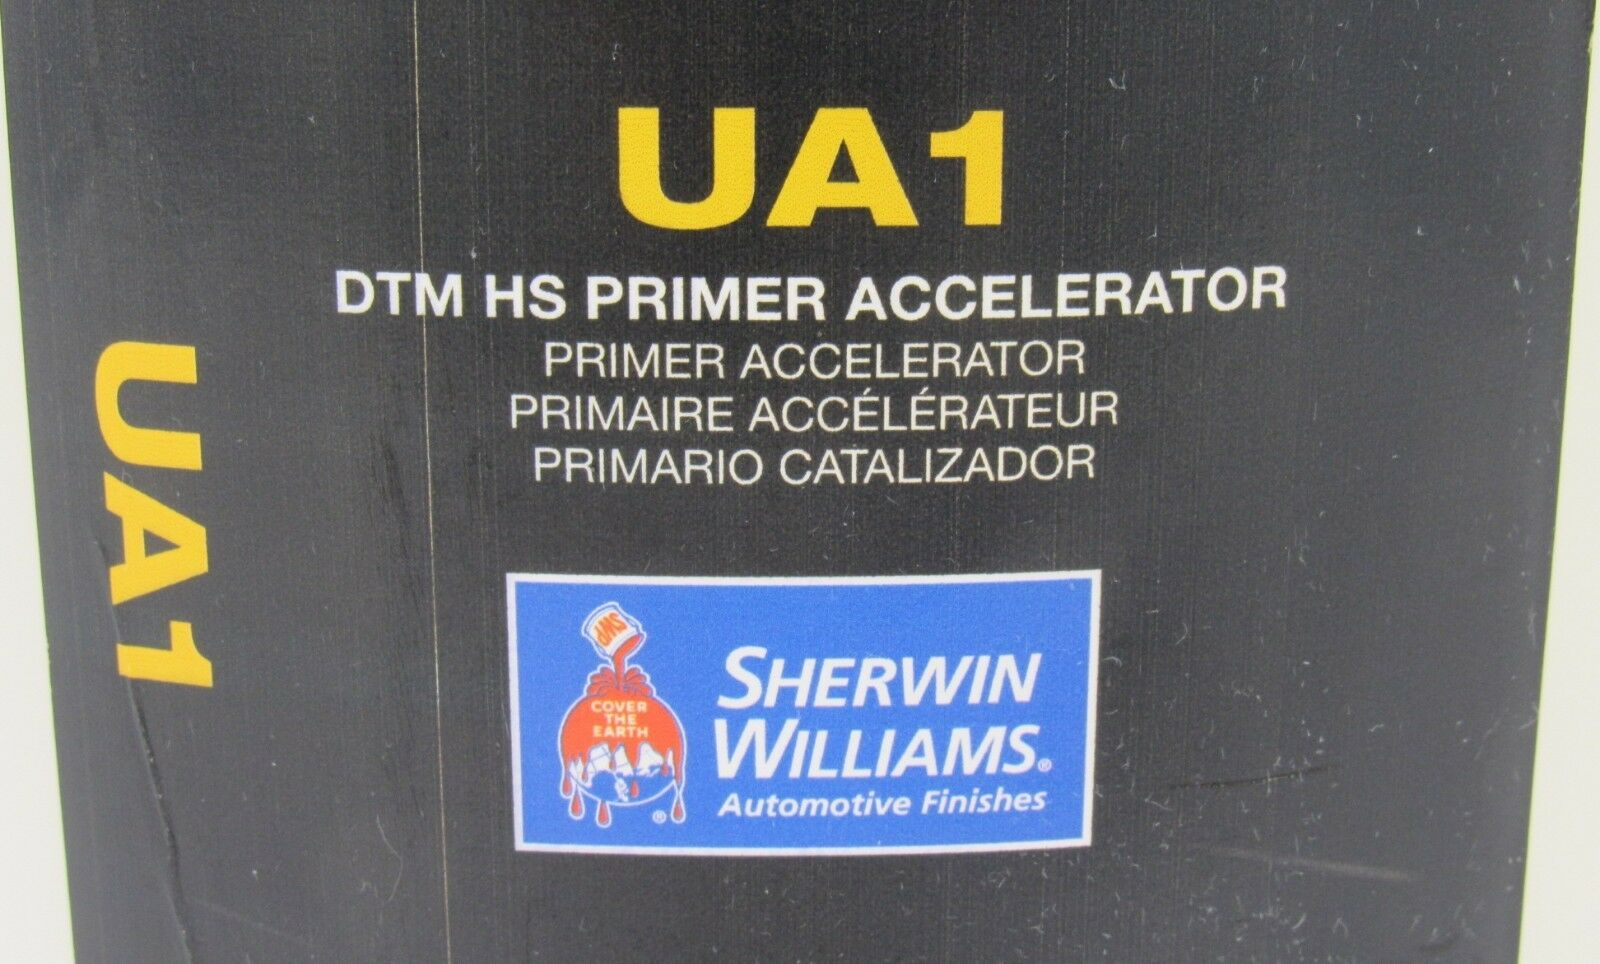 Sherwin Williams Automotive Ua1 Dtm Hs Primer Accelerator 1 Quart Premium